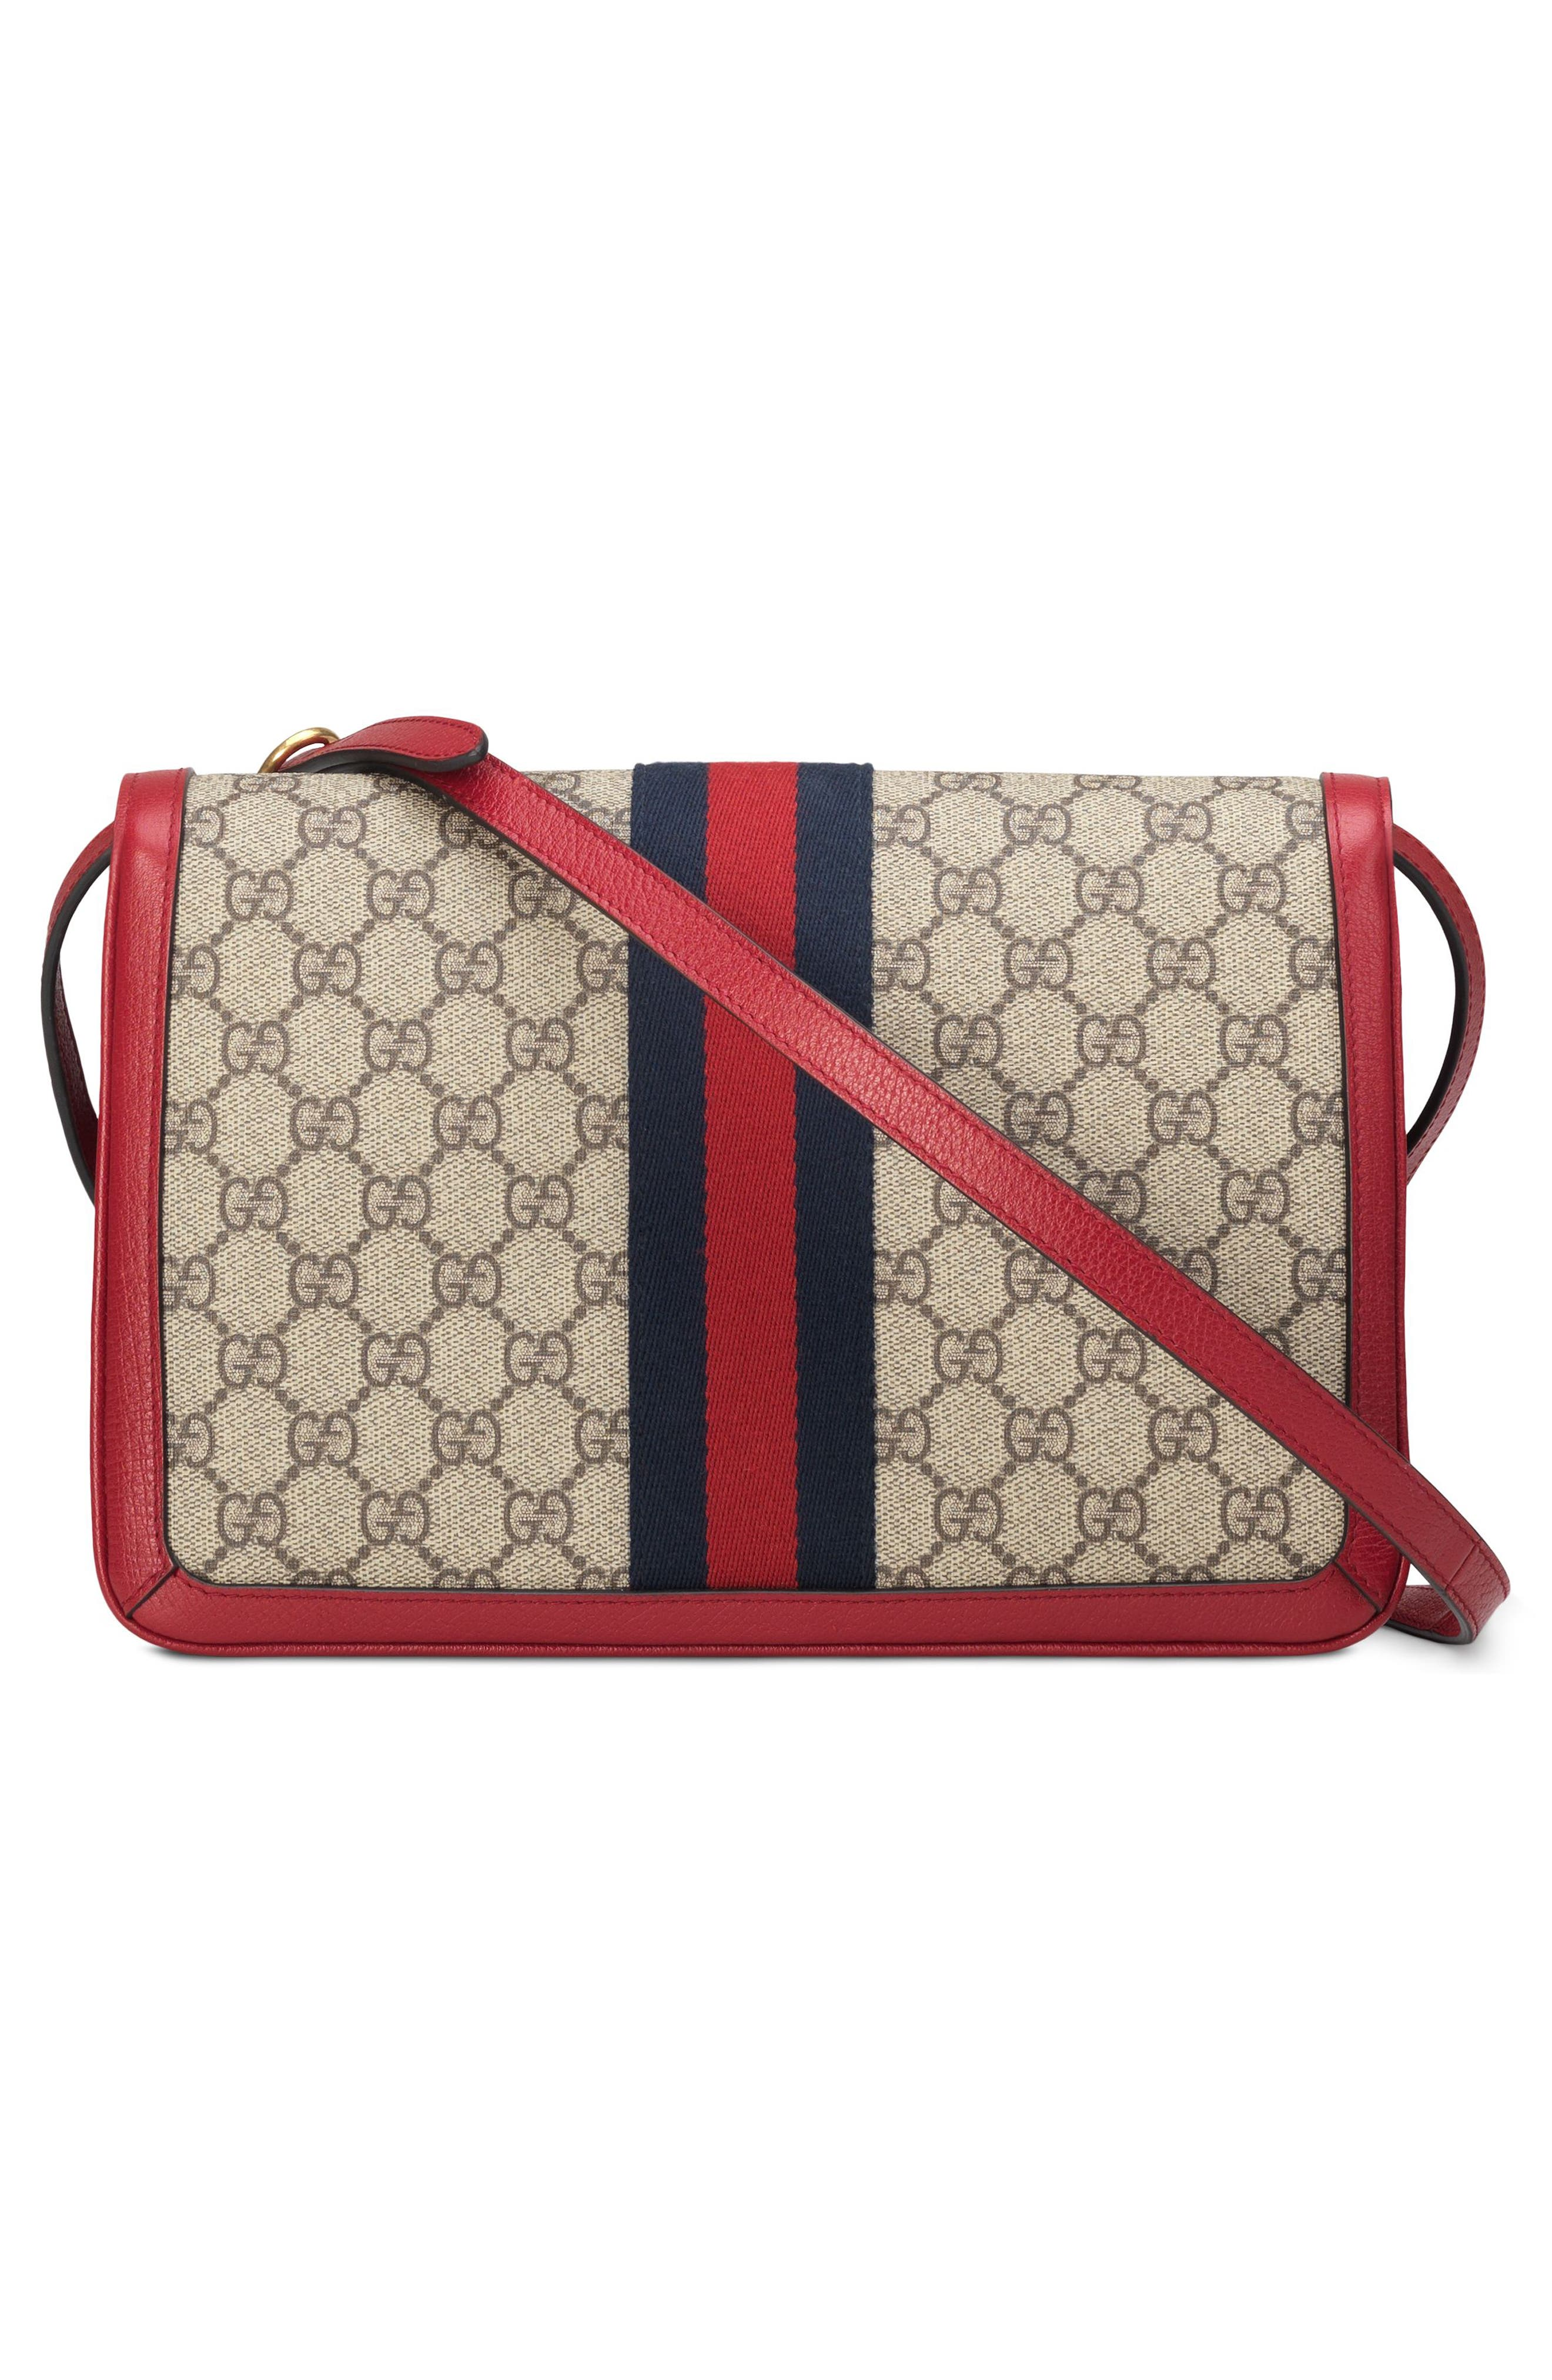 Queen Margaret GG Supreme Small Crossbody Bag,                             Alternate thumbnail 2, color,                             Beige Ebony/ Blue Red/ Ruby